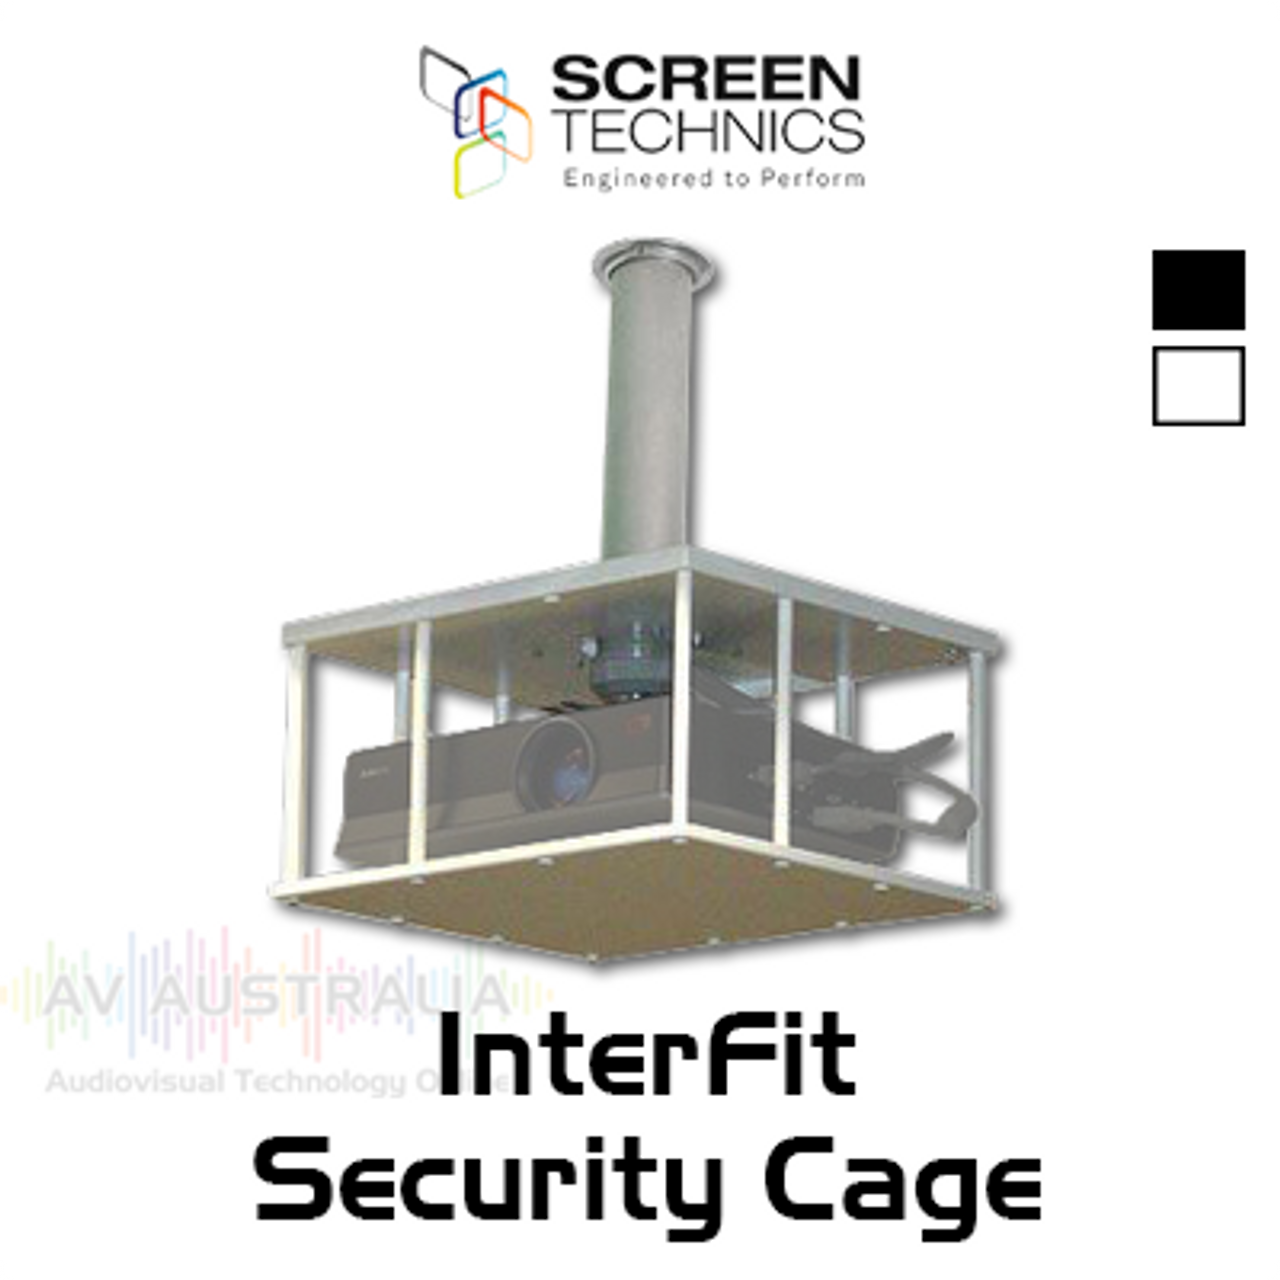 ST Interfit Projector Security Cage